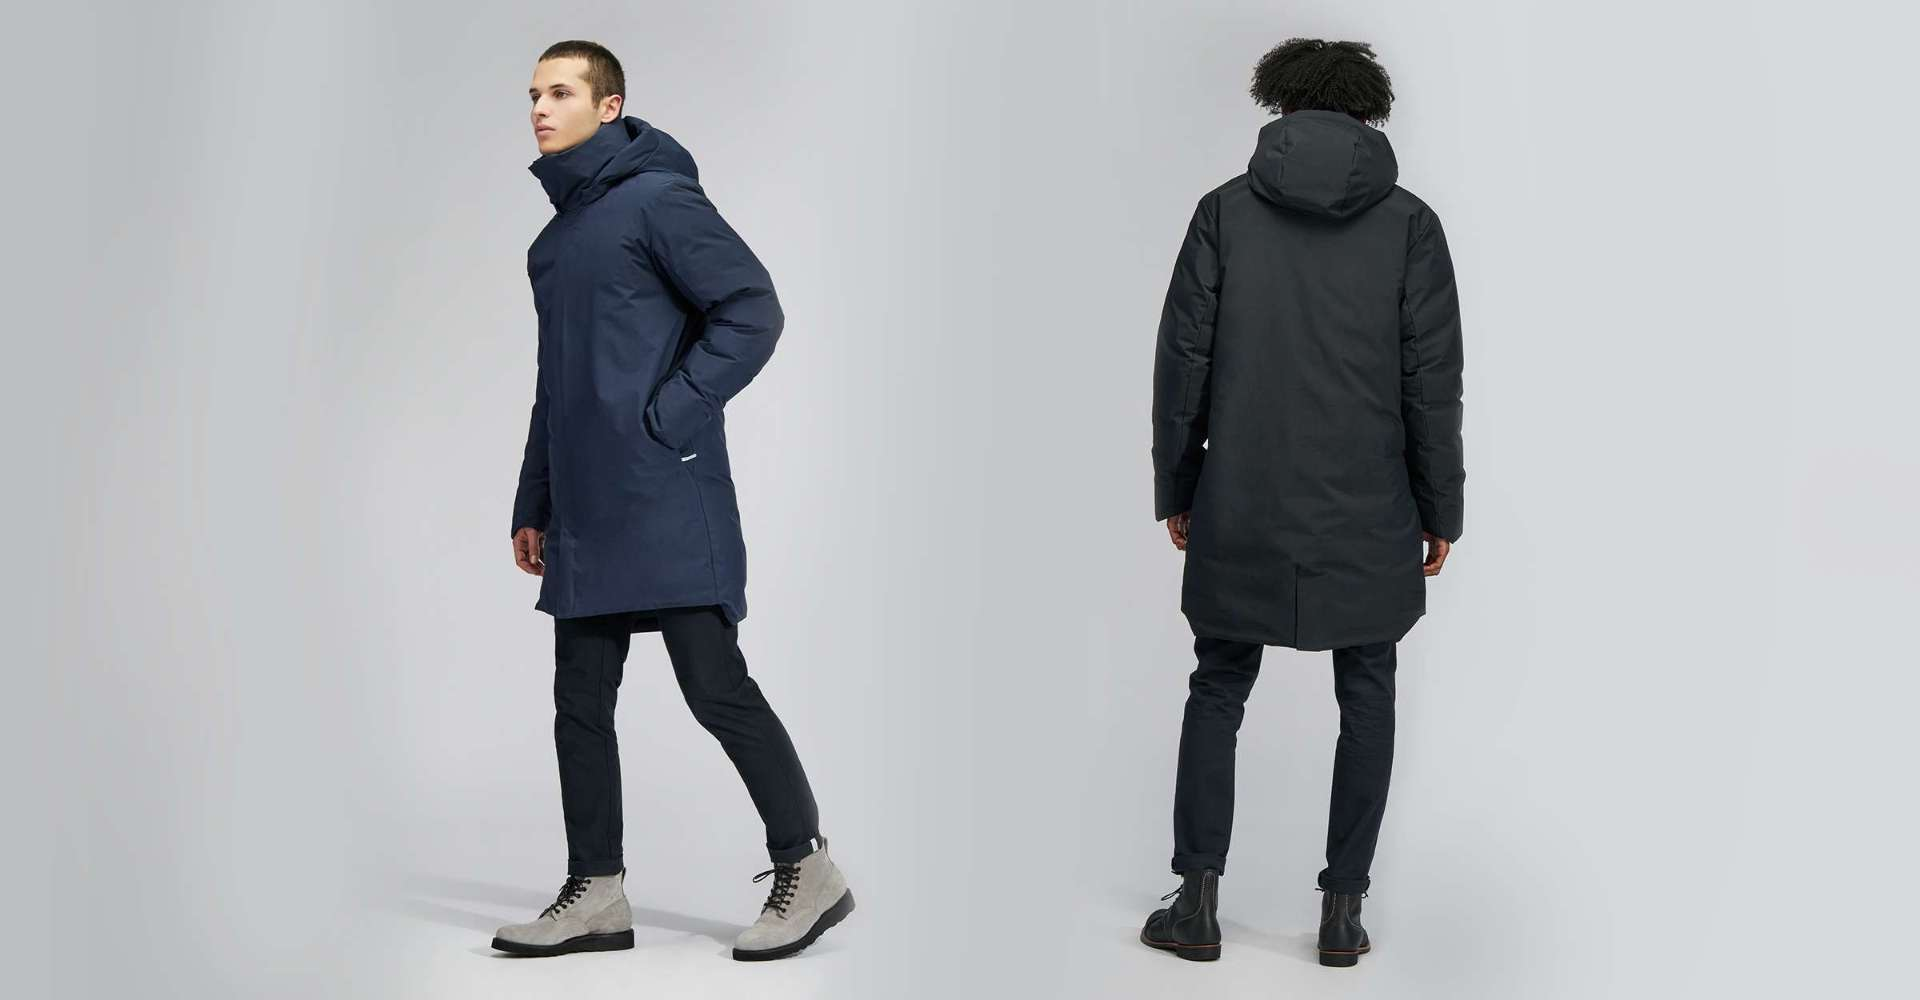 Look Closer: Designing The Men's Outremont Down Parka